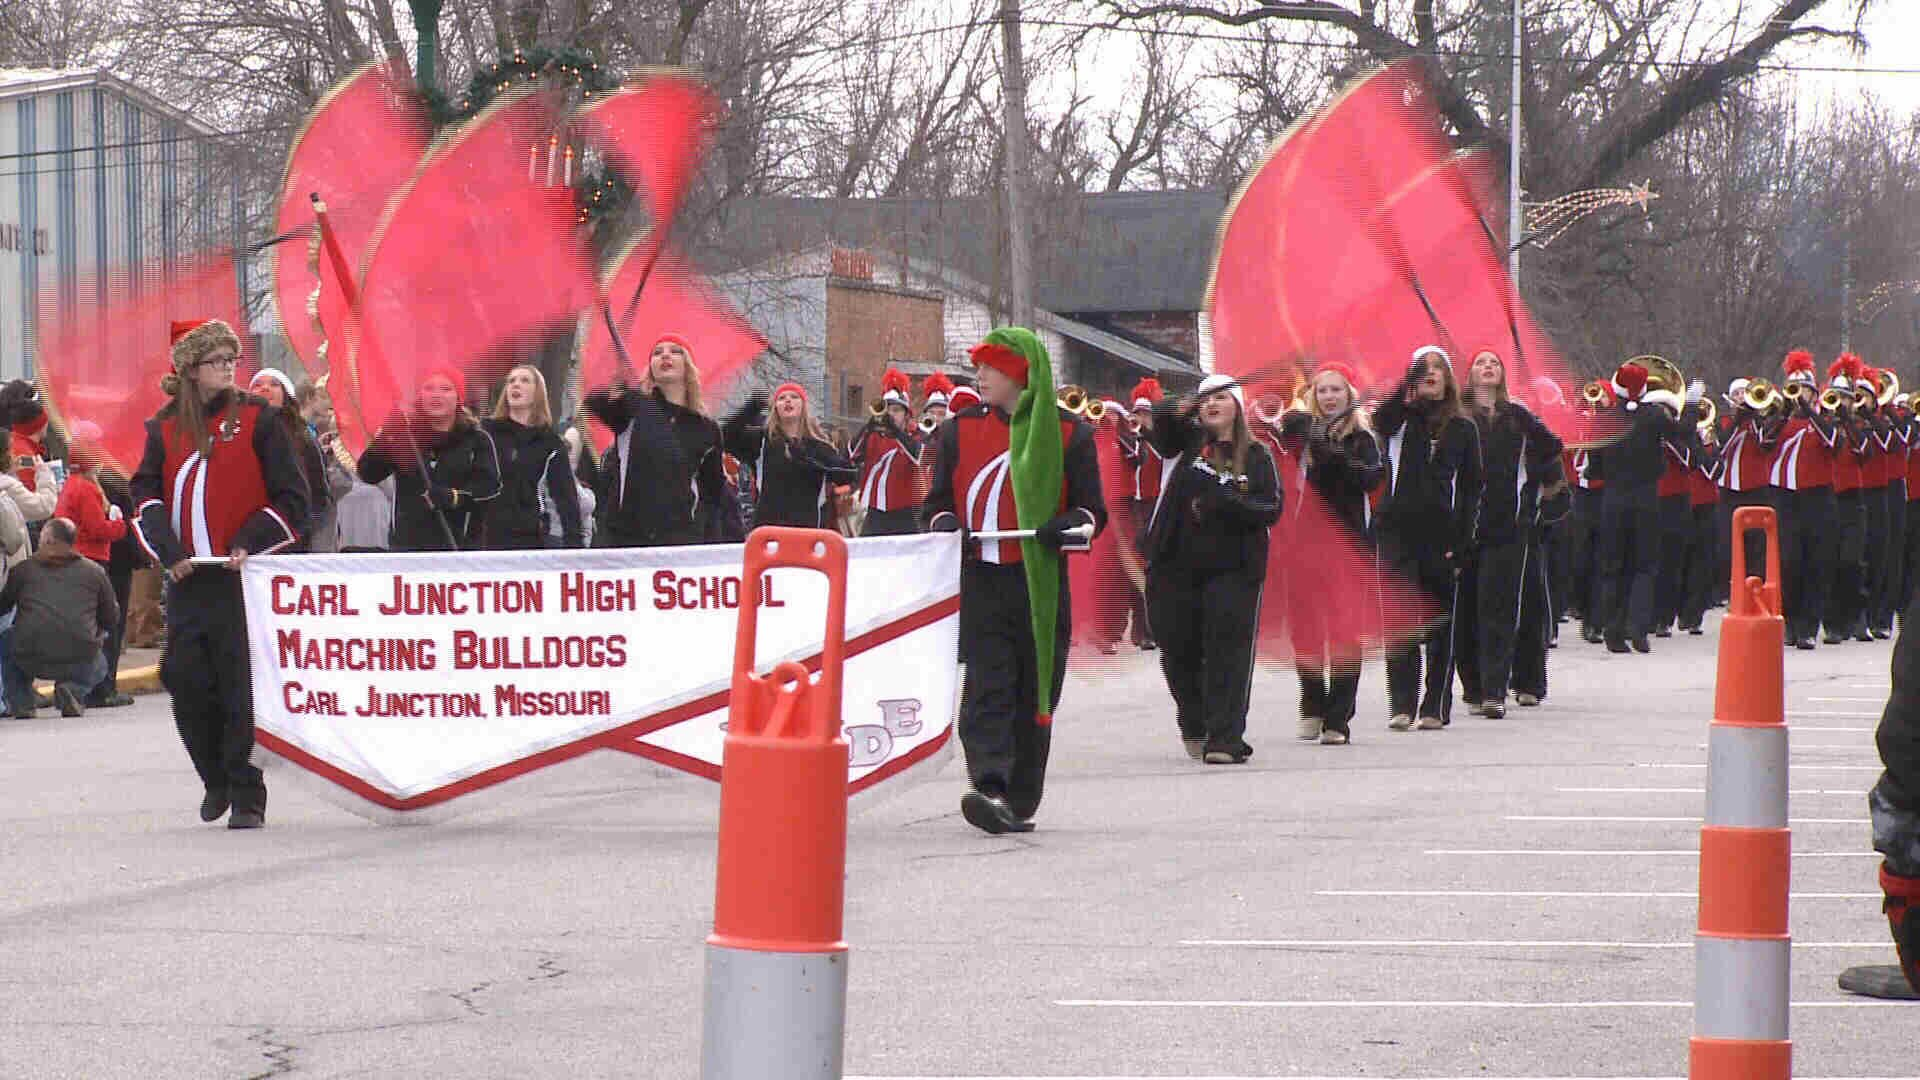 Organizers Back Out Hosting Carl Junction Christmas Parade - KOAM TV 7